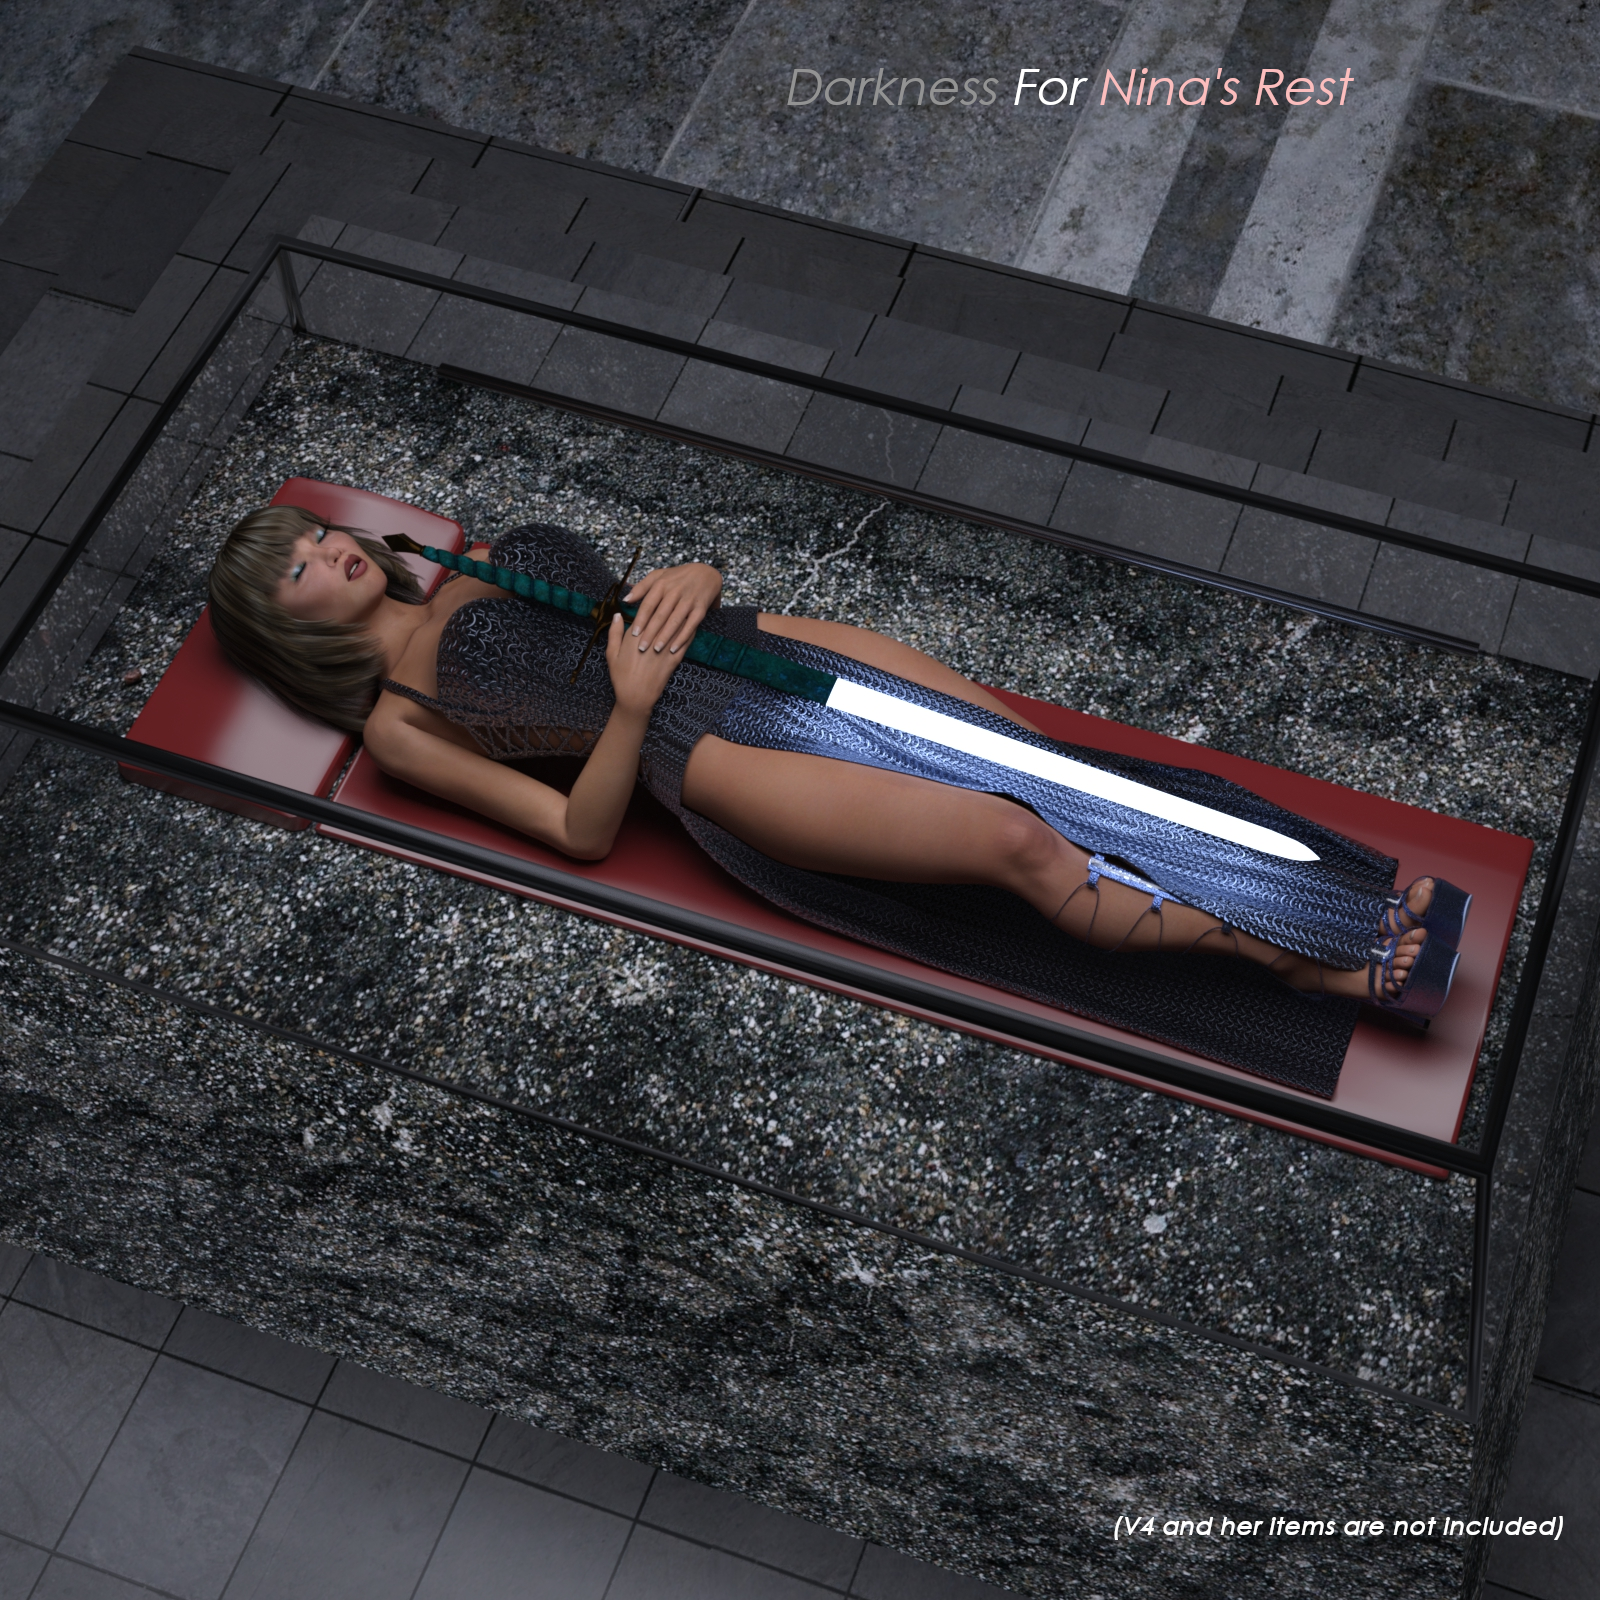 Darkness for Nina's Rest by Cobbler3D